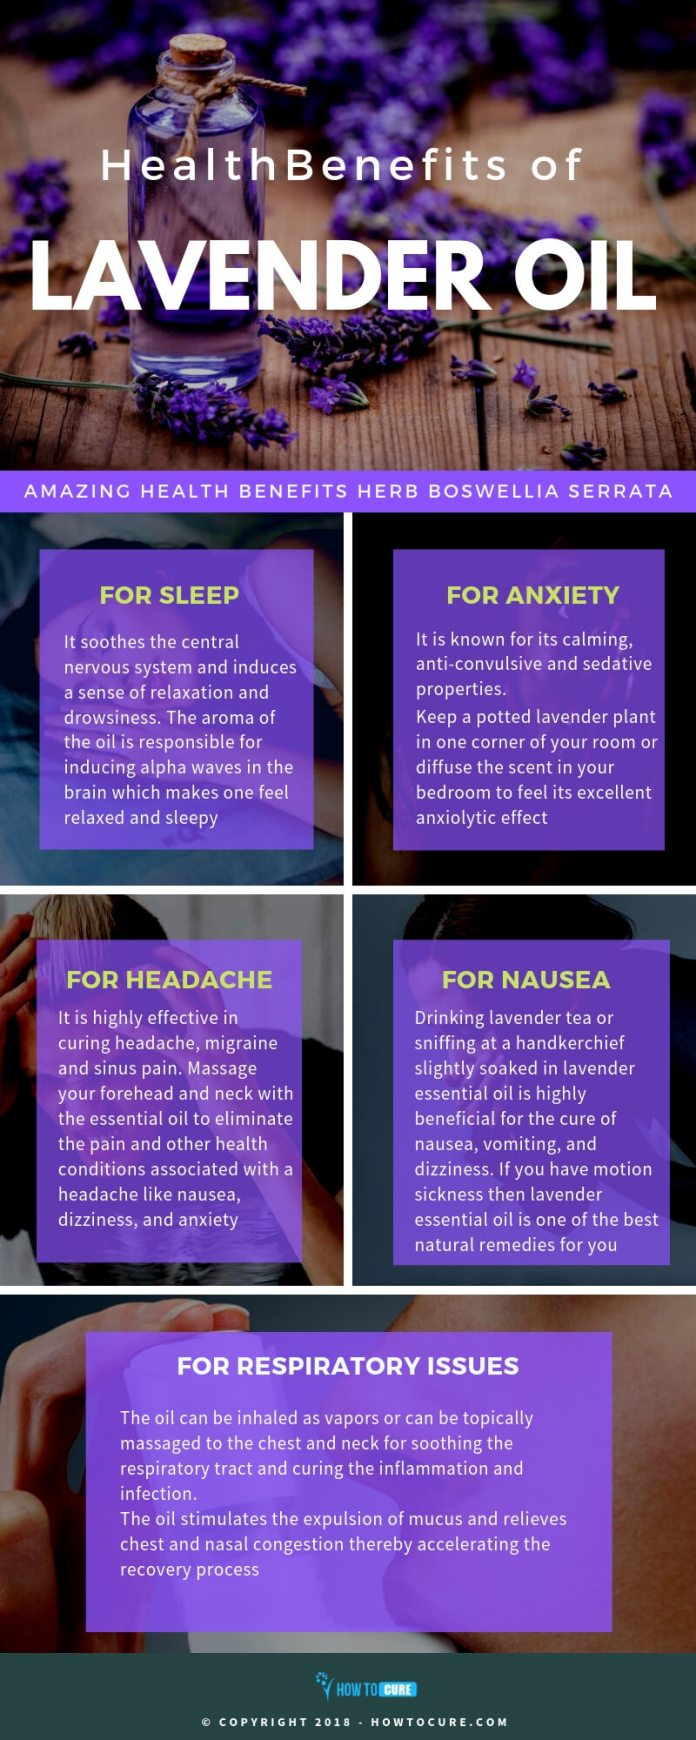 lavender oil benefits infographic